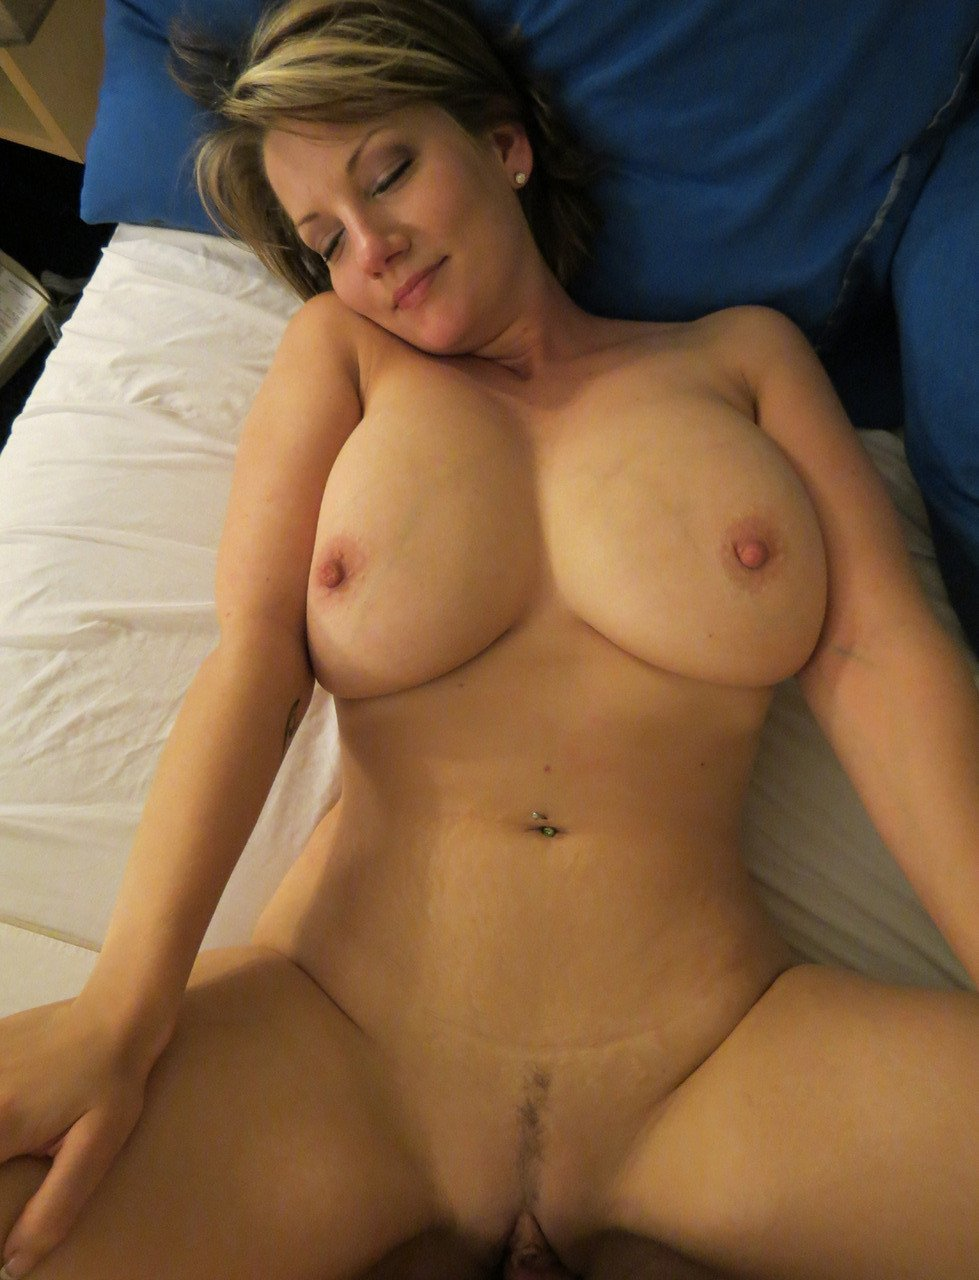 Milfs having sex